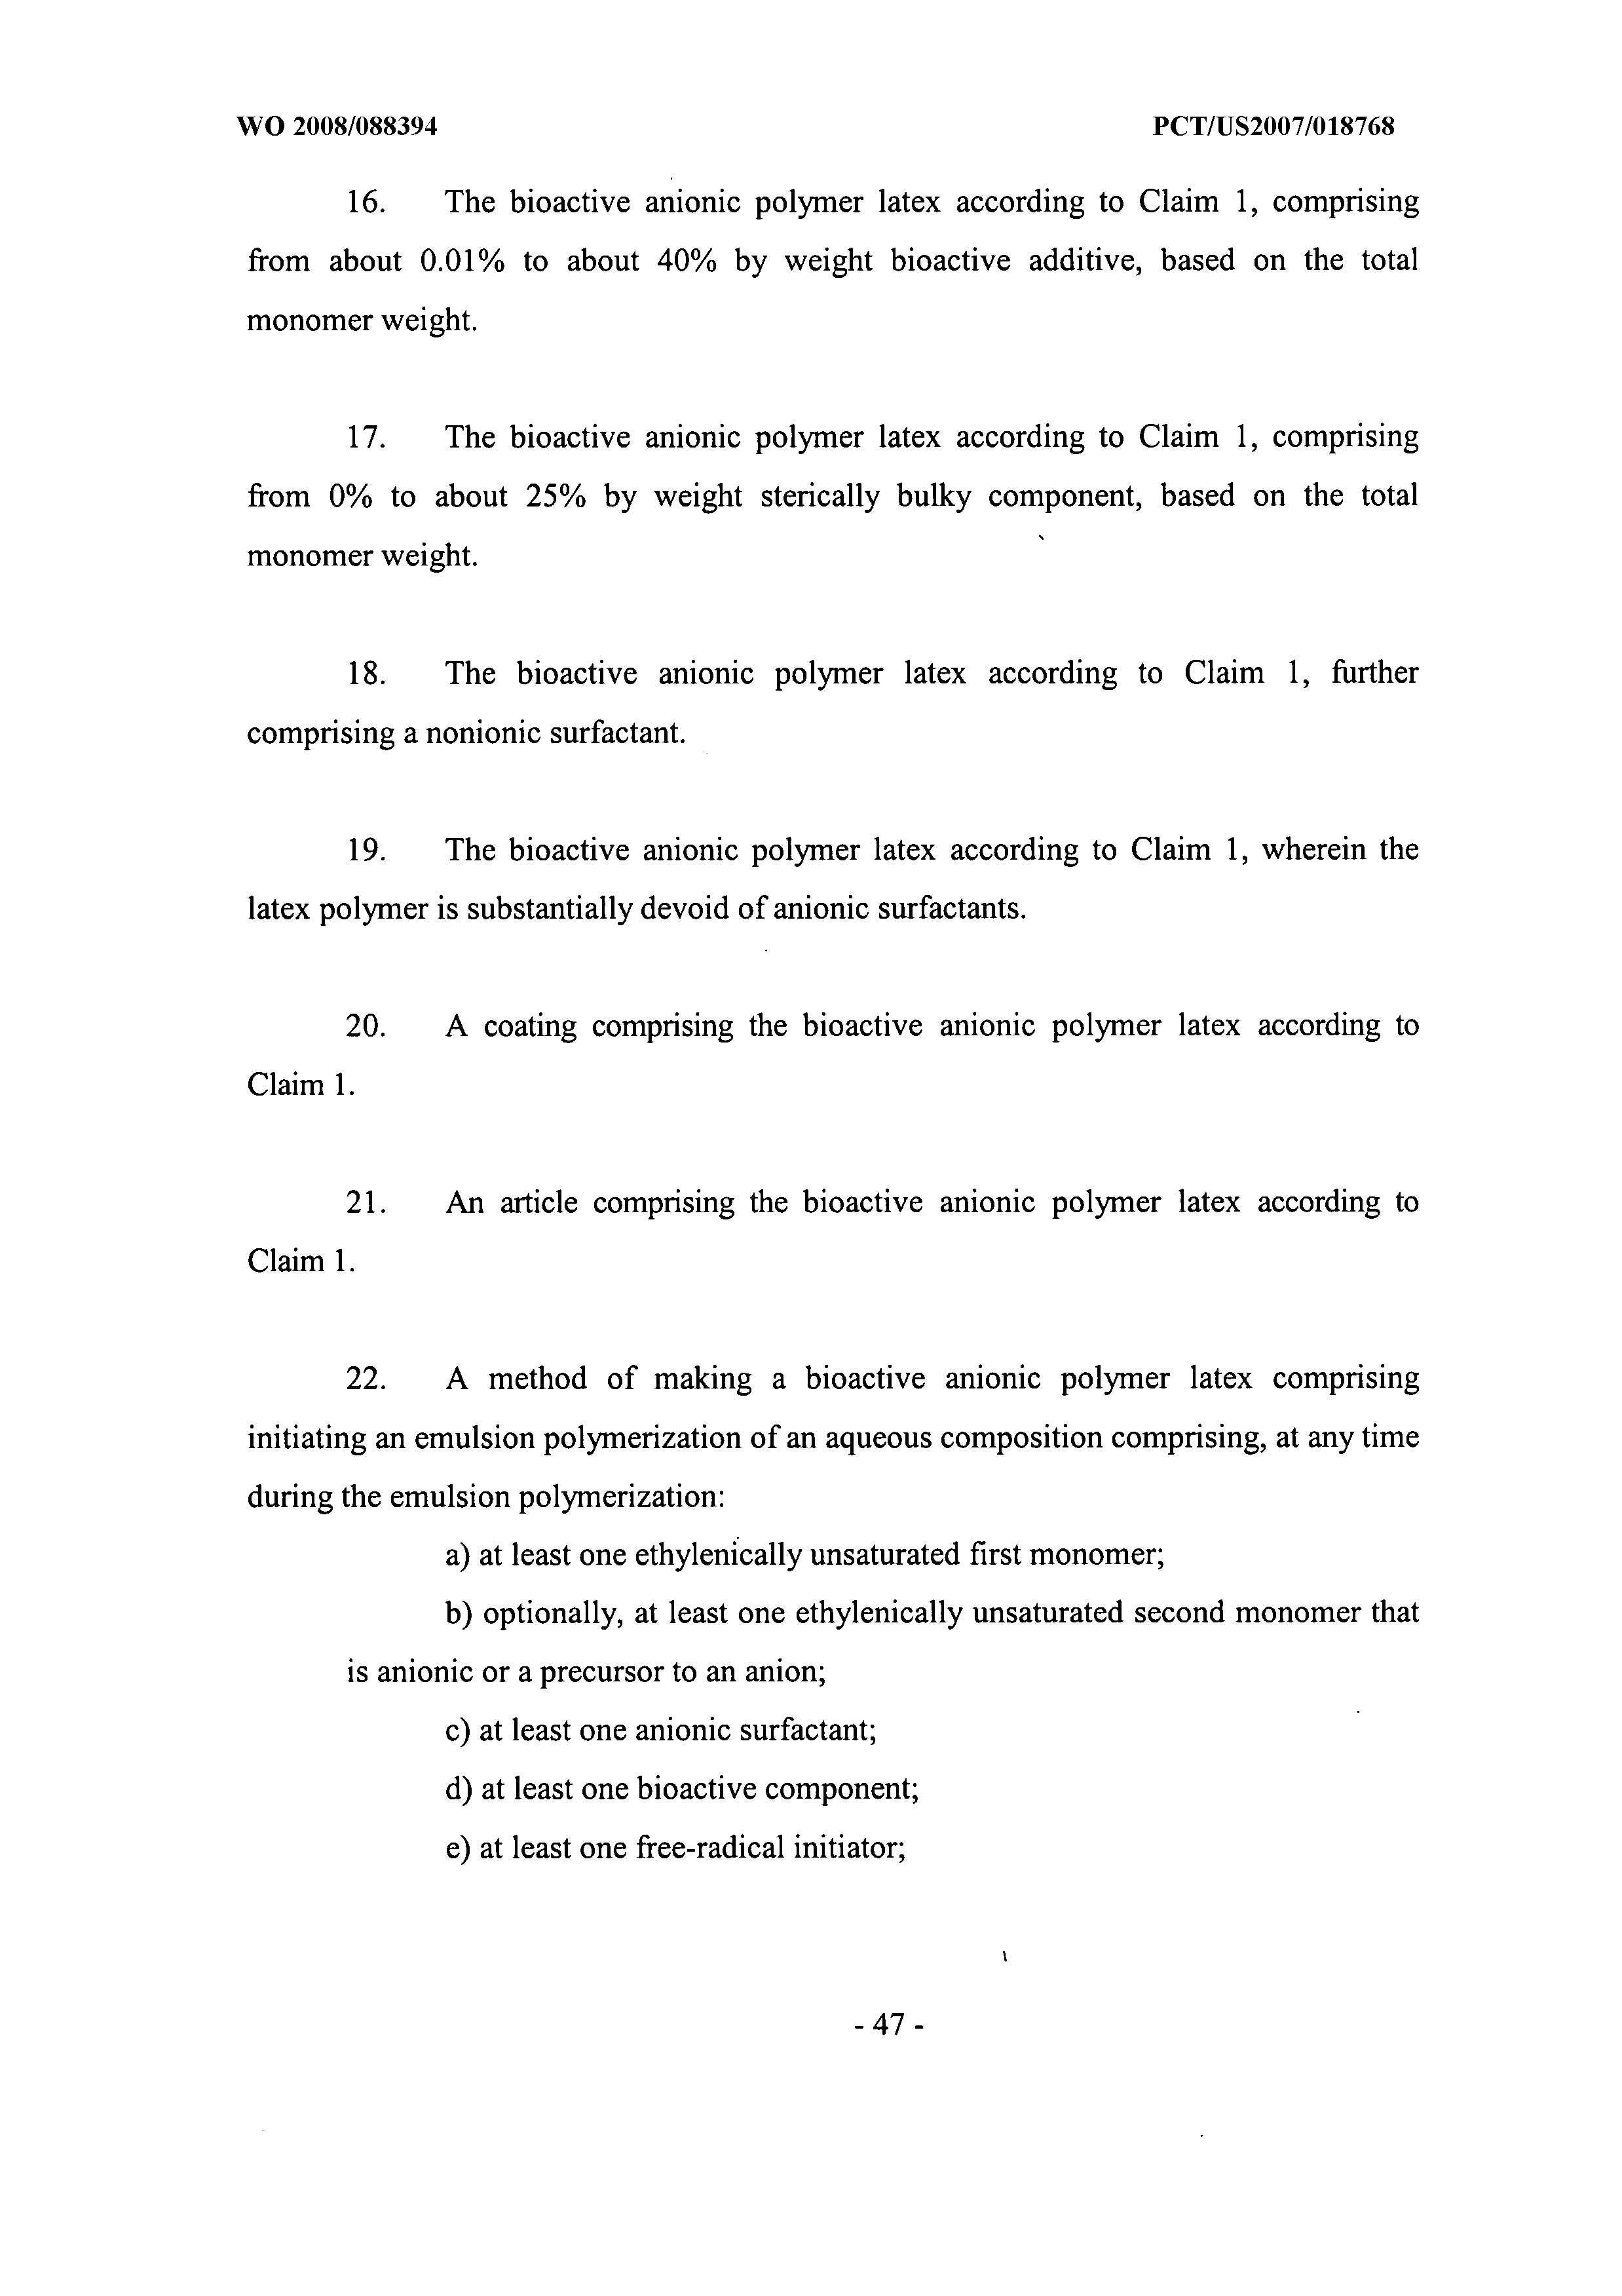 WO 2008/088394 A2 - Anionic Latex As A Carrier For Bioactive